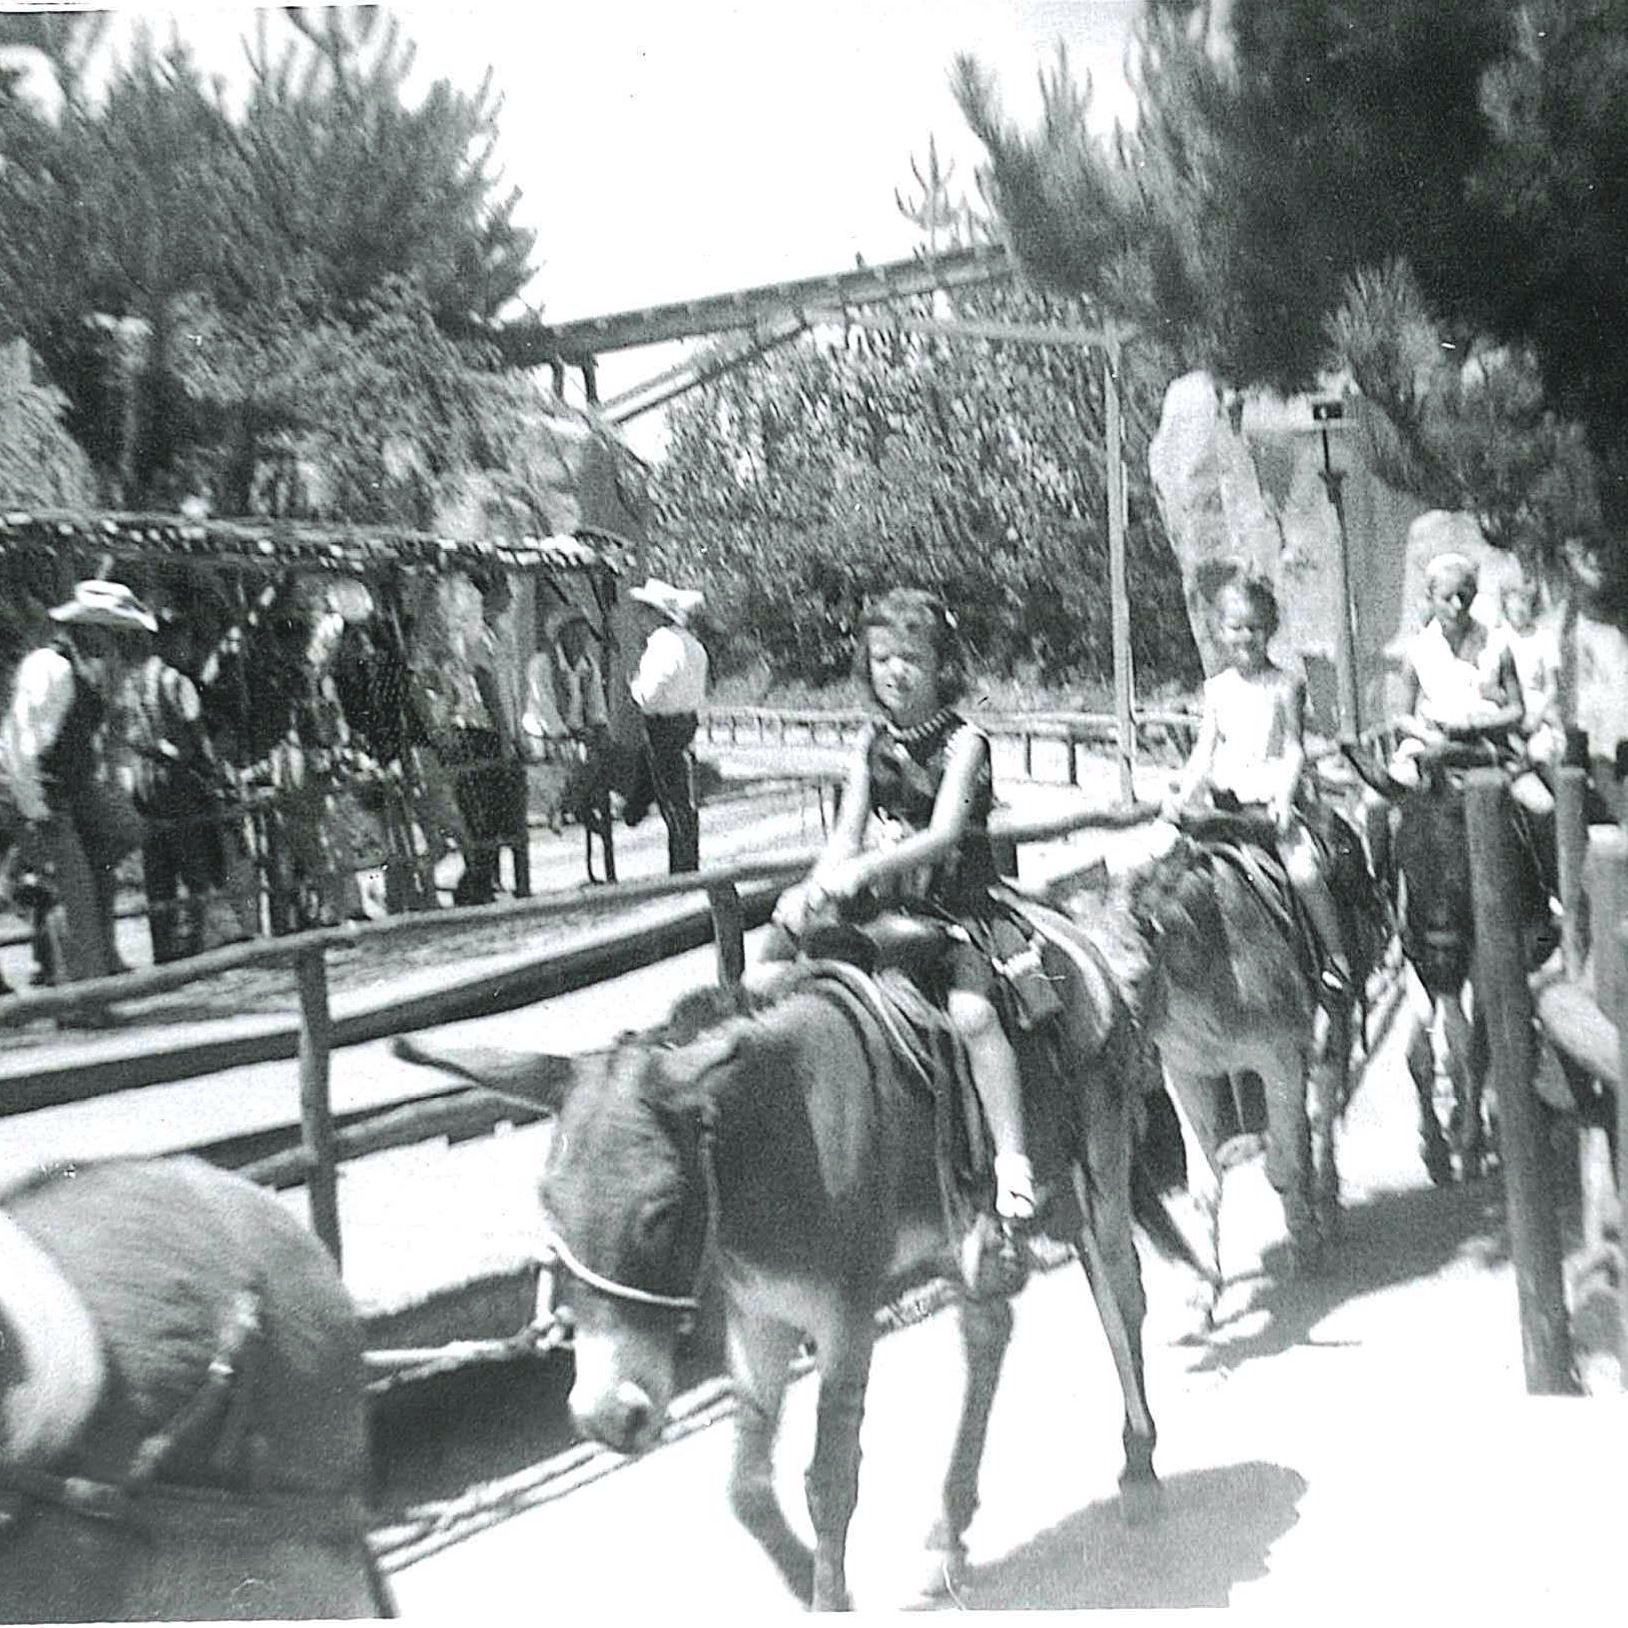 Mule Ride through Natures Wonderland 1959